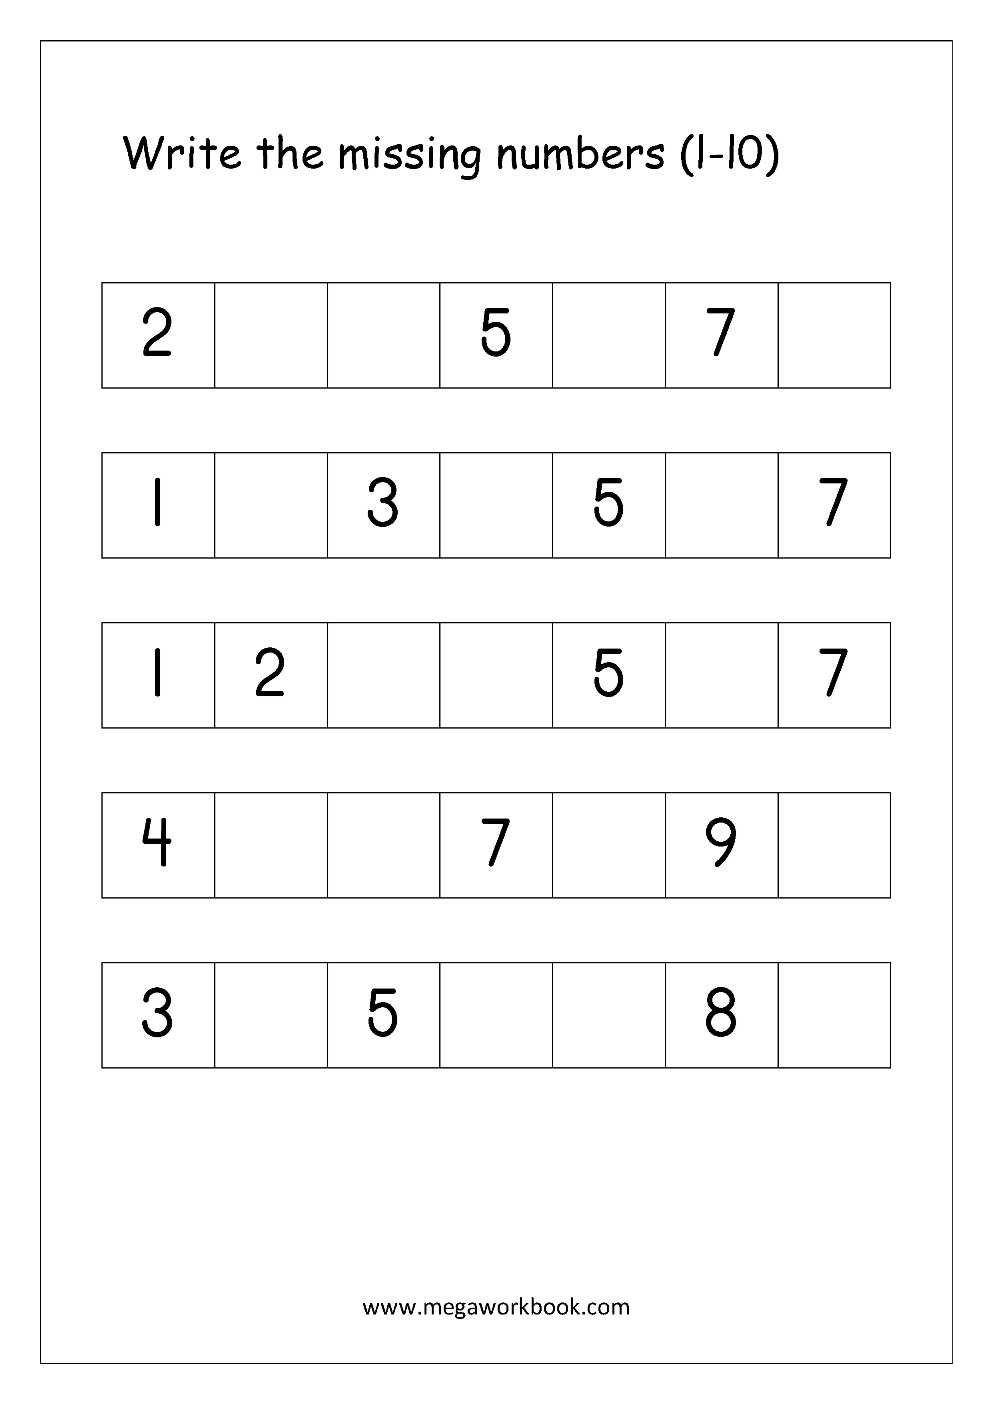 worksheet Number Order Worksheets free math worksheets number ordering and missing numbers worksheet numbers